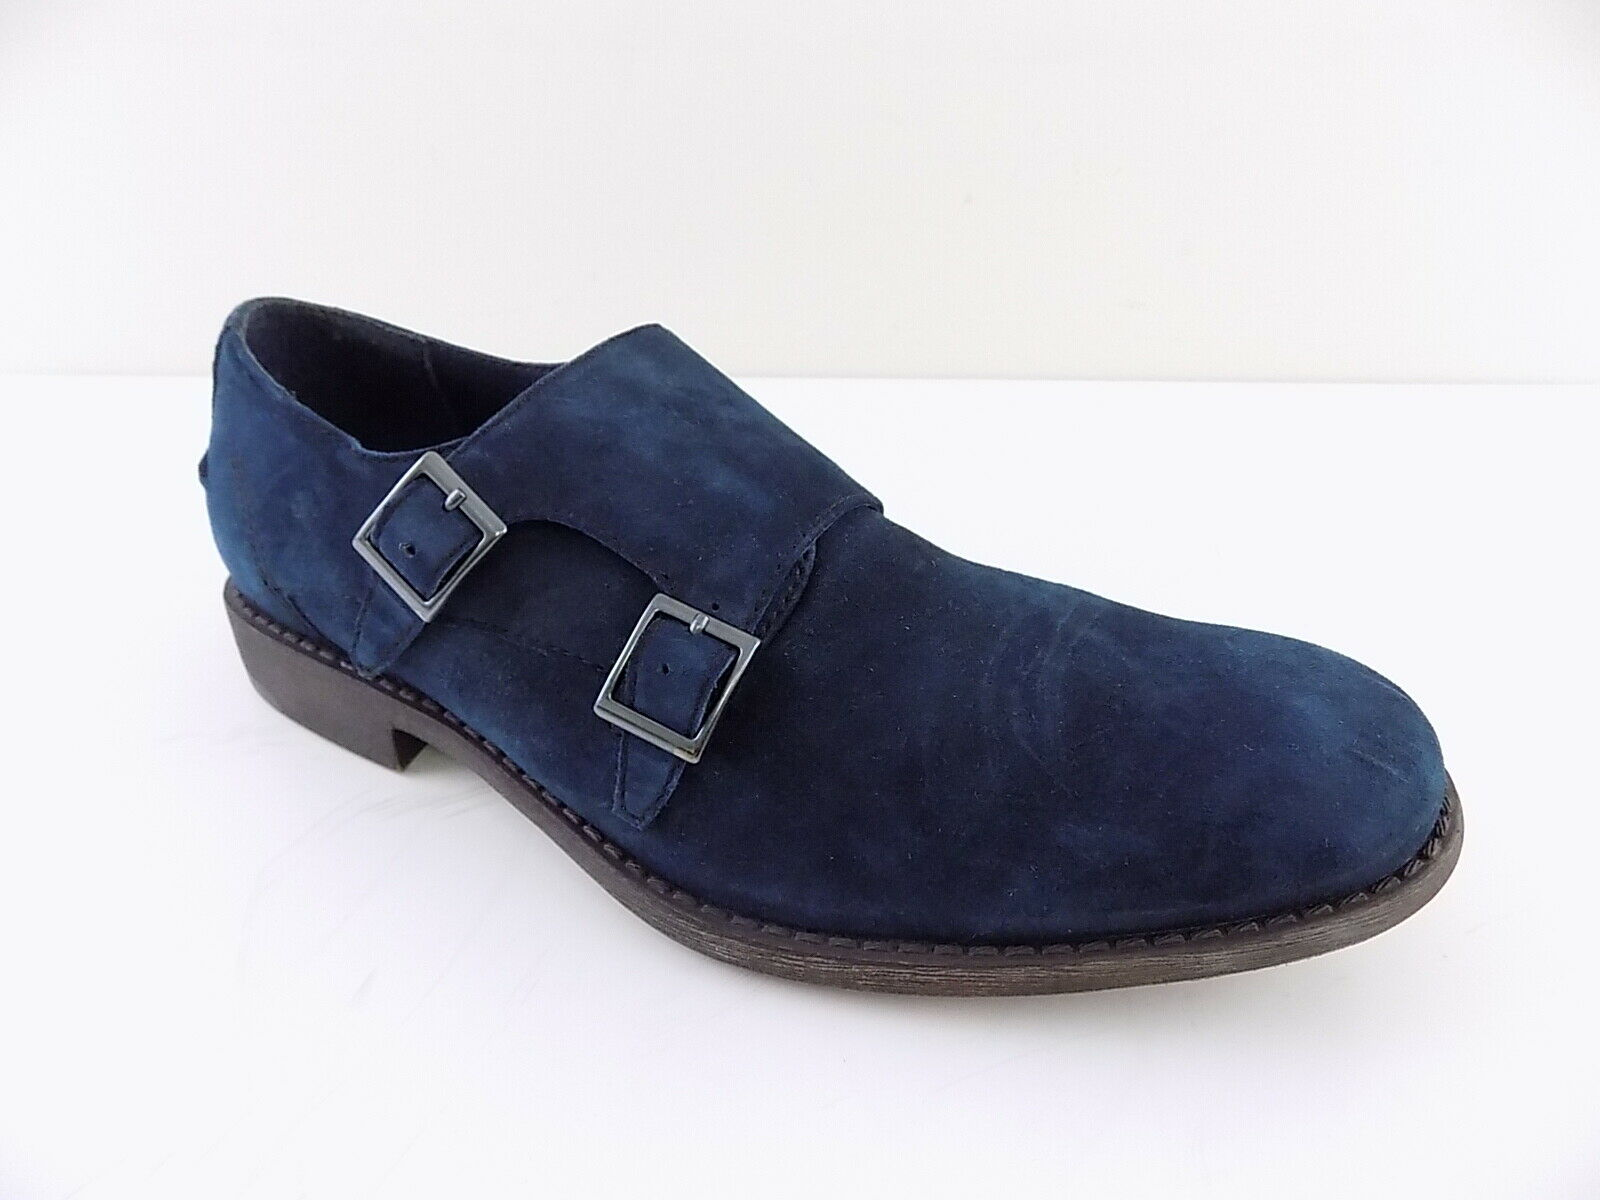 Kenneth Cole 20644 Blue Mens Size 7.5M MONK STRAP Loafers & Slip Ons Shoes